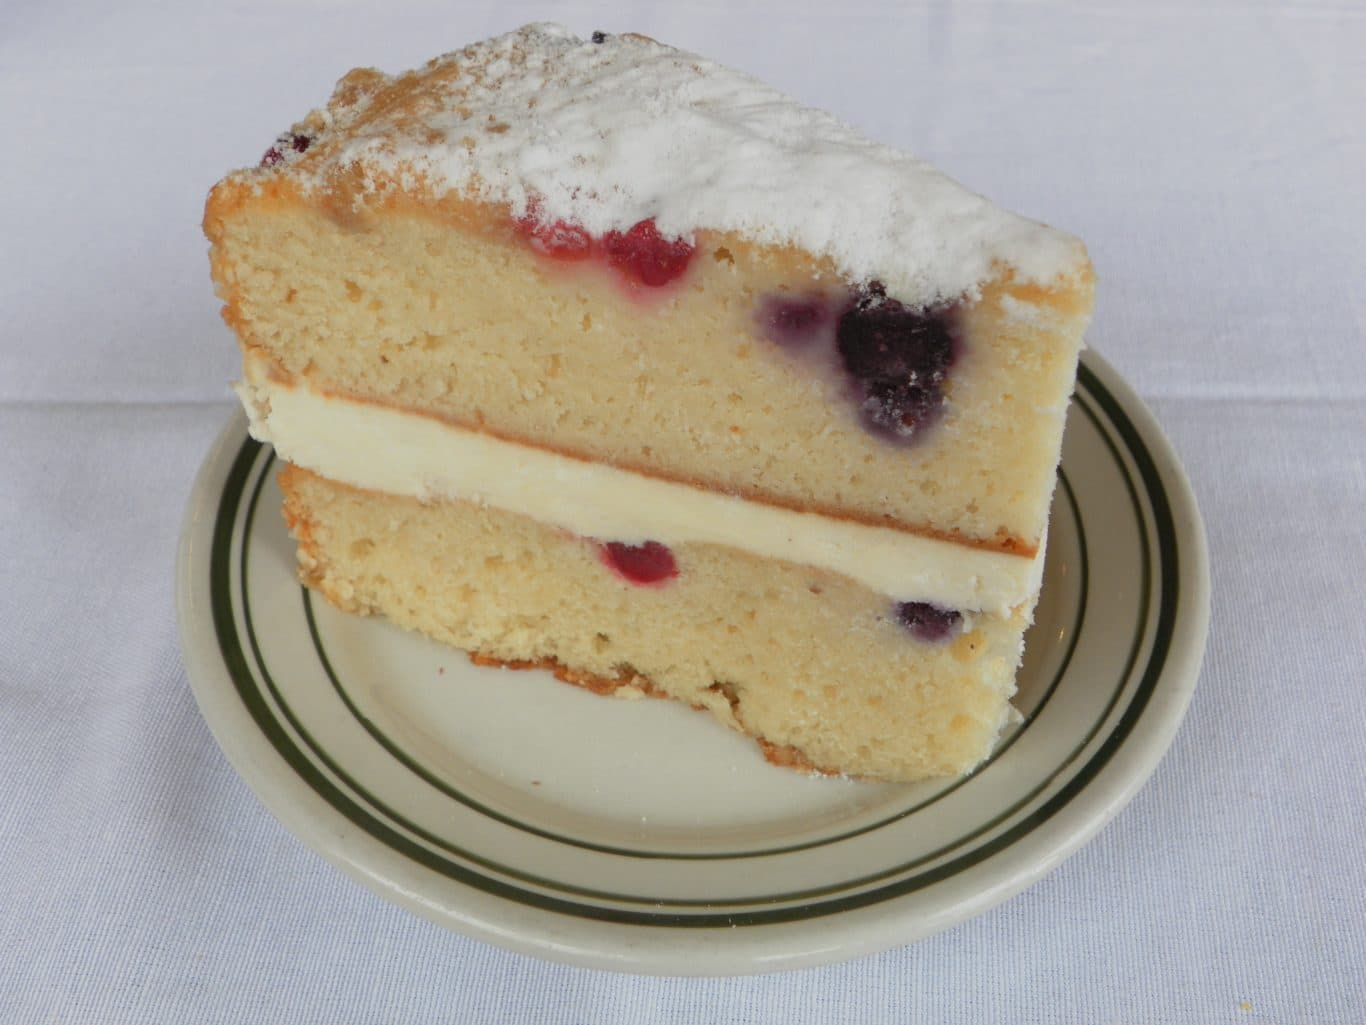 Berry Mascarpone Cake